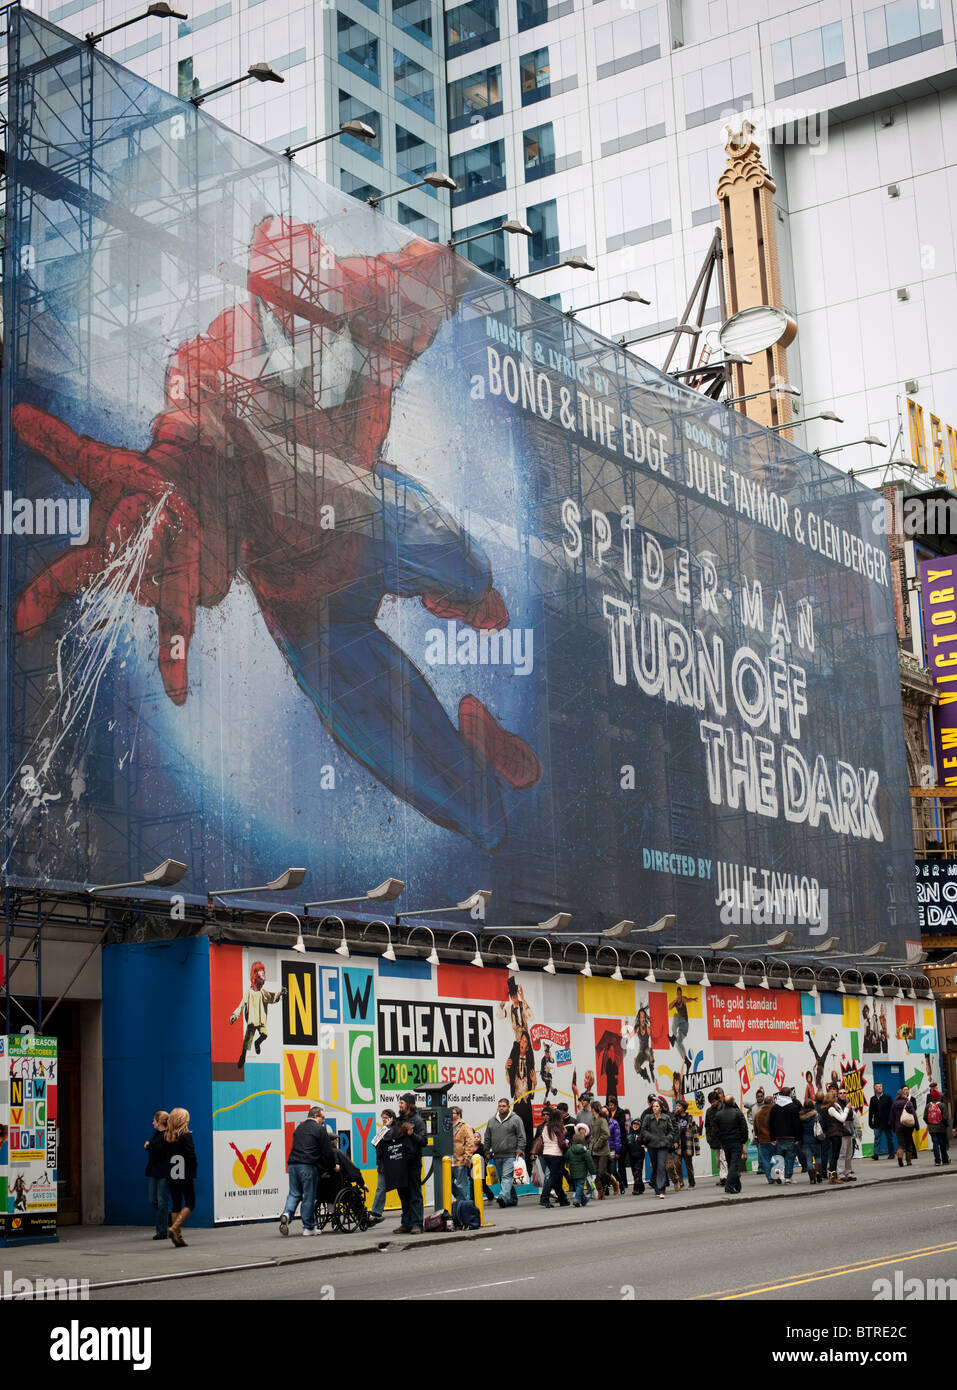 A poster advertising the 'Spider-Man Turn Off the Dark' Broadway musical is seen  on 42nd street in Times - Stock Image